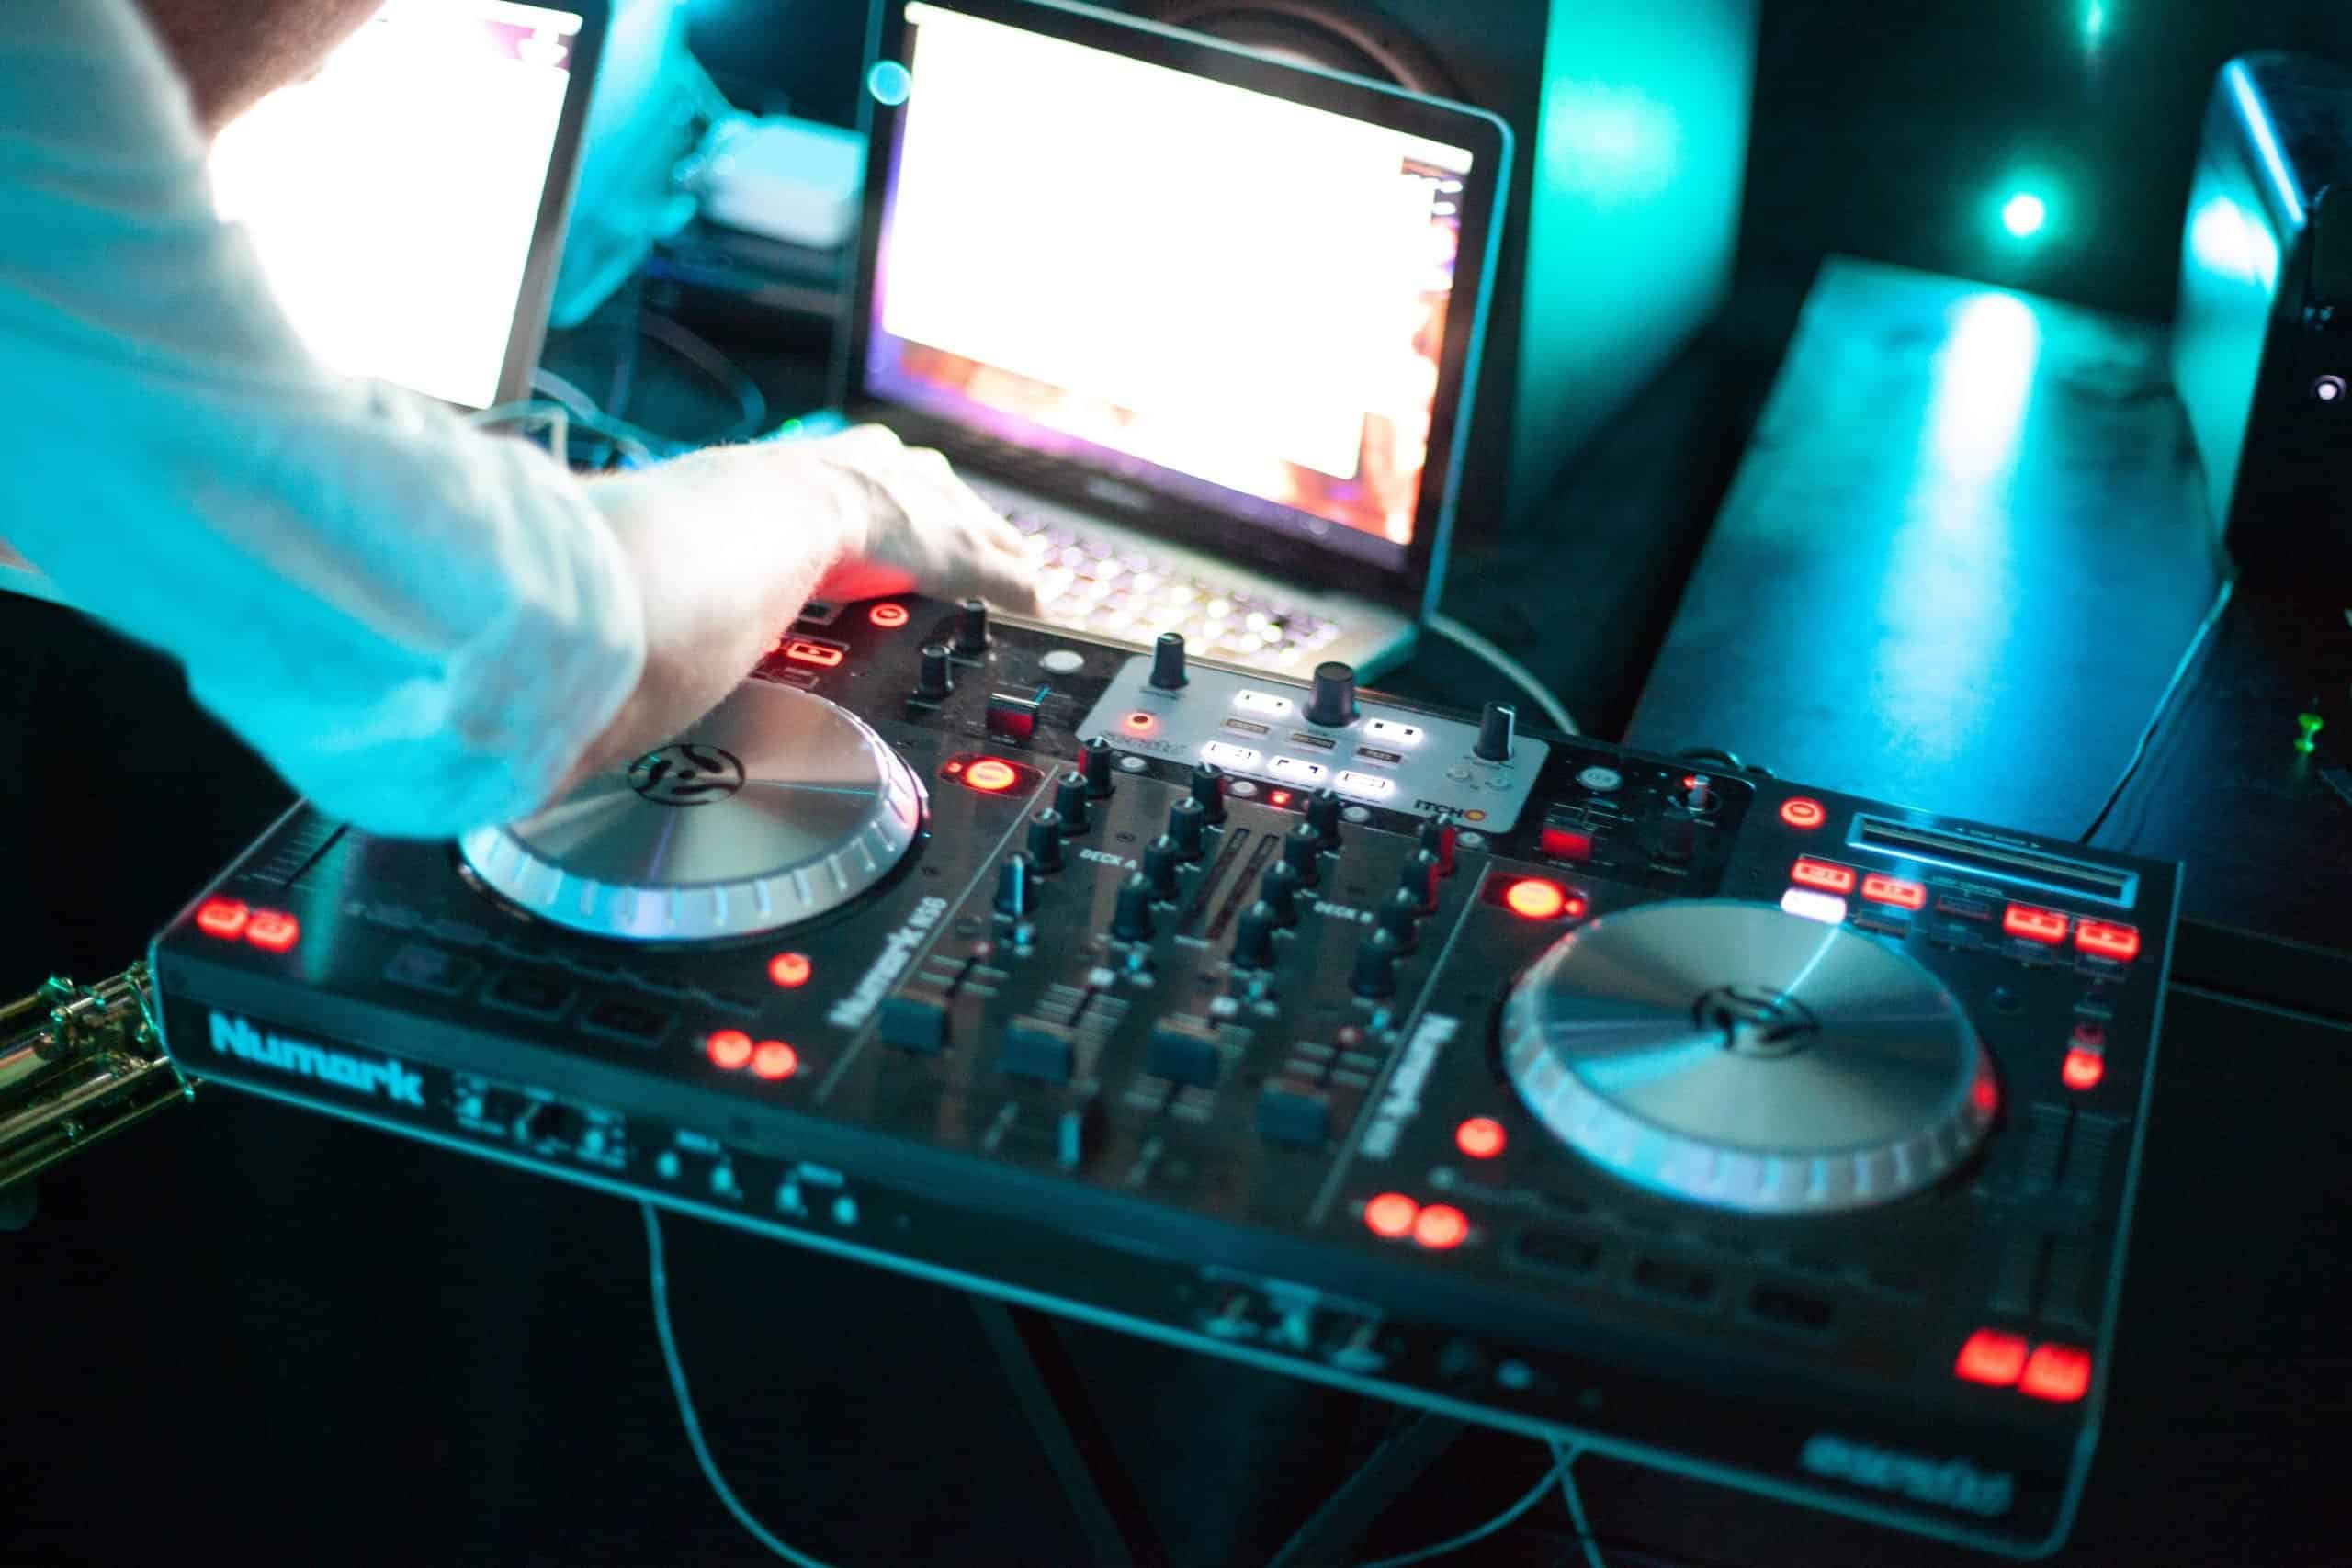 A DJ sets up his mixing table for a night filled with music.